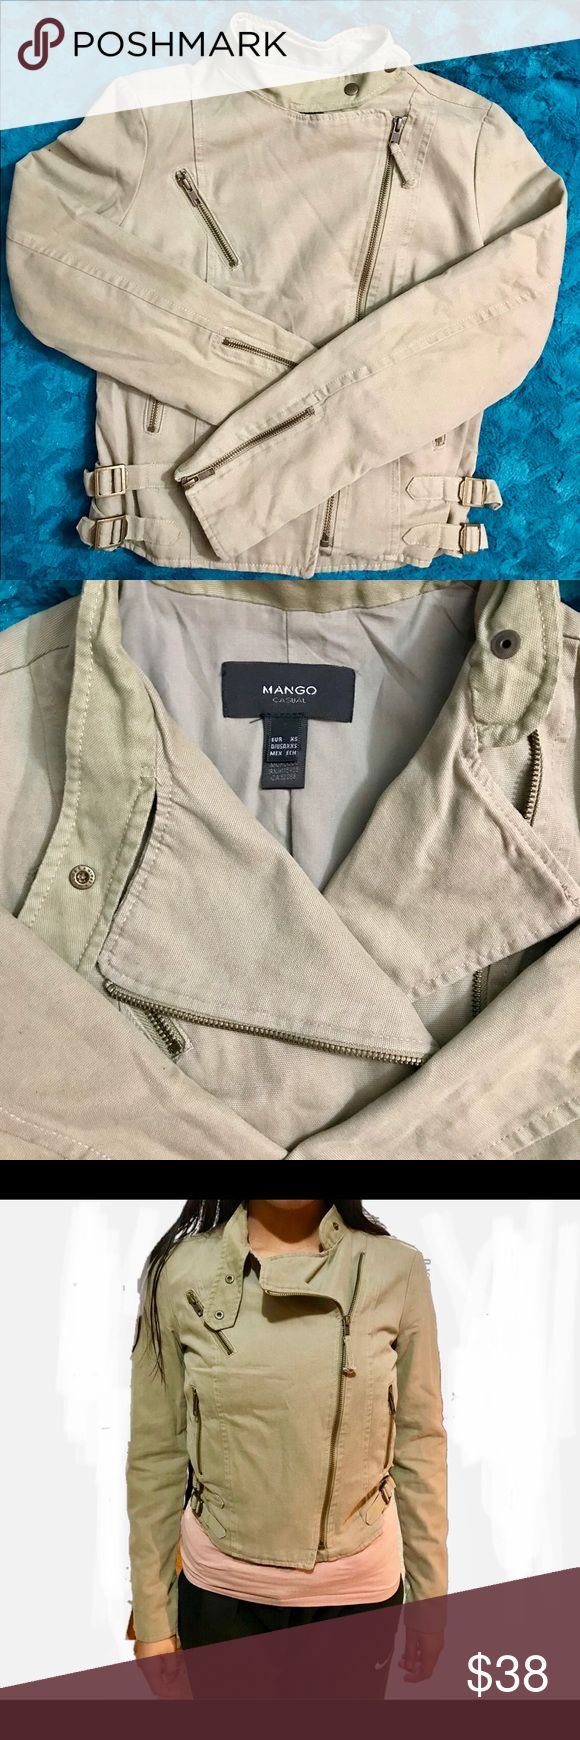 Mango jacket Worn a few times, great condition. EUR sz XS, US sz XXS. My girl has outgrown it. Coming from a pet/smoke free home. Mango Jackets & Coats Utility Jackets